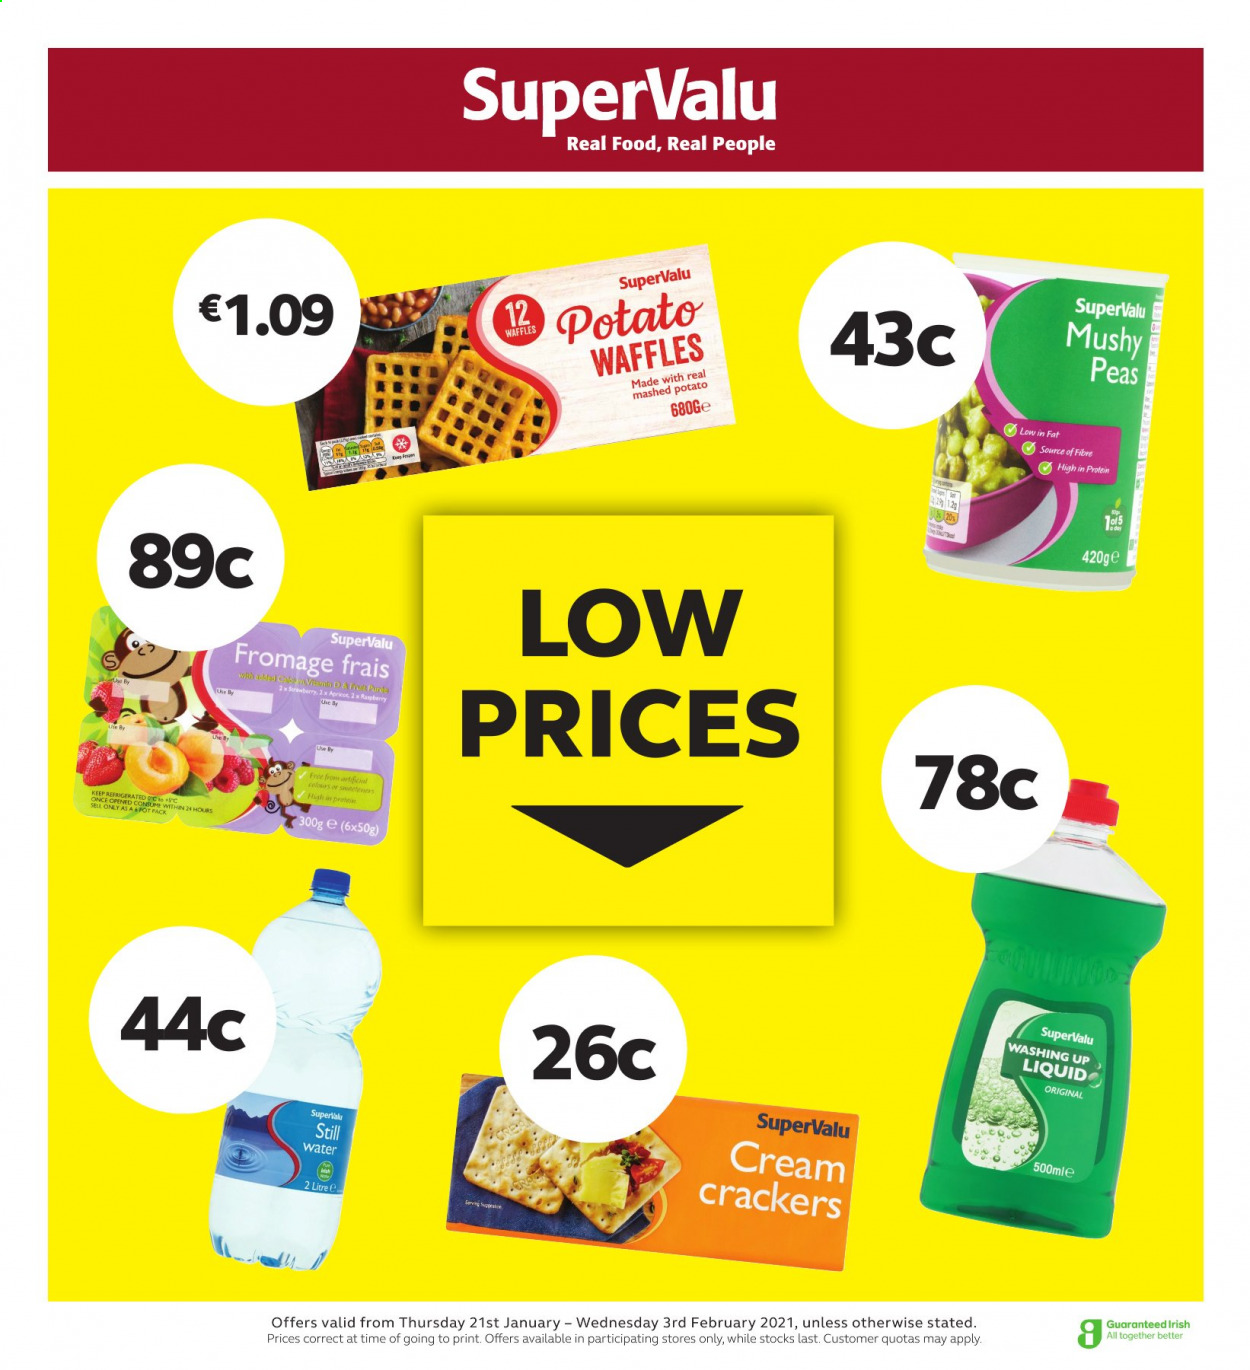 SuperValu offer  - 21.1.2021 - 3.2.2021 - Sales products - waffles, peas, crackers, dishwashing liquid. Page 1.